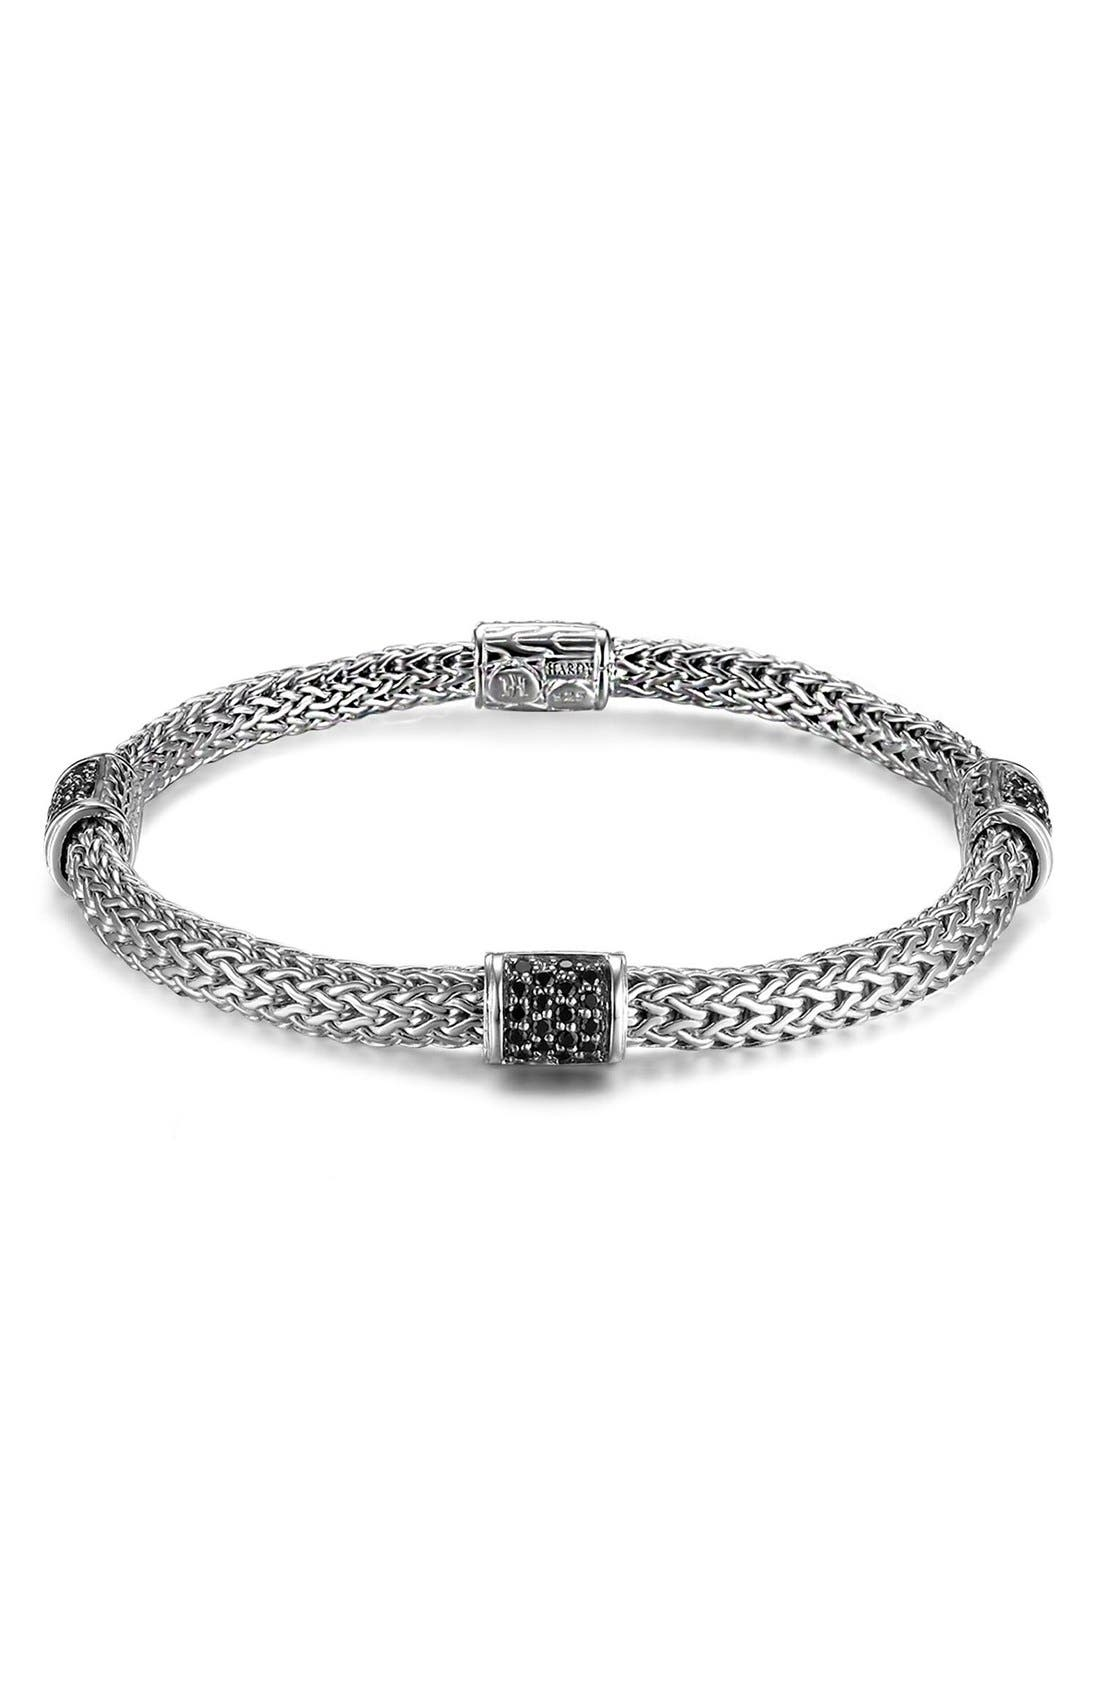 'Classic Chain - Lava' Extra Small Braided Bracelet,                         Main,                         color, Silver/ Black Sapphire